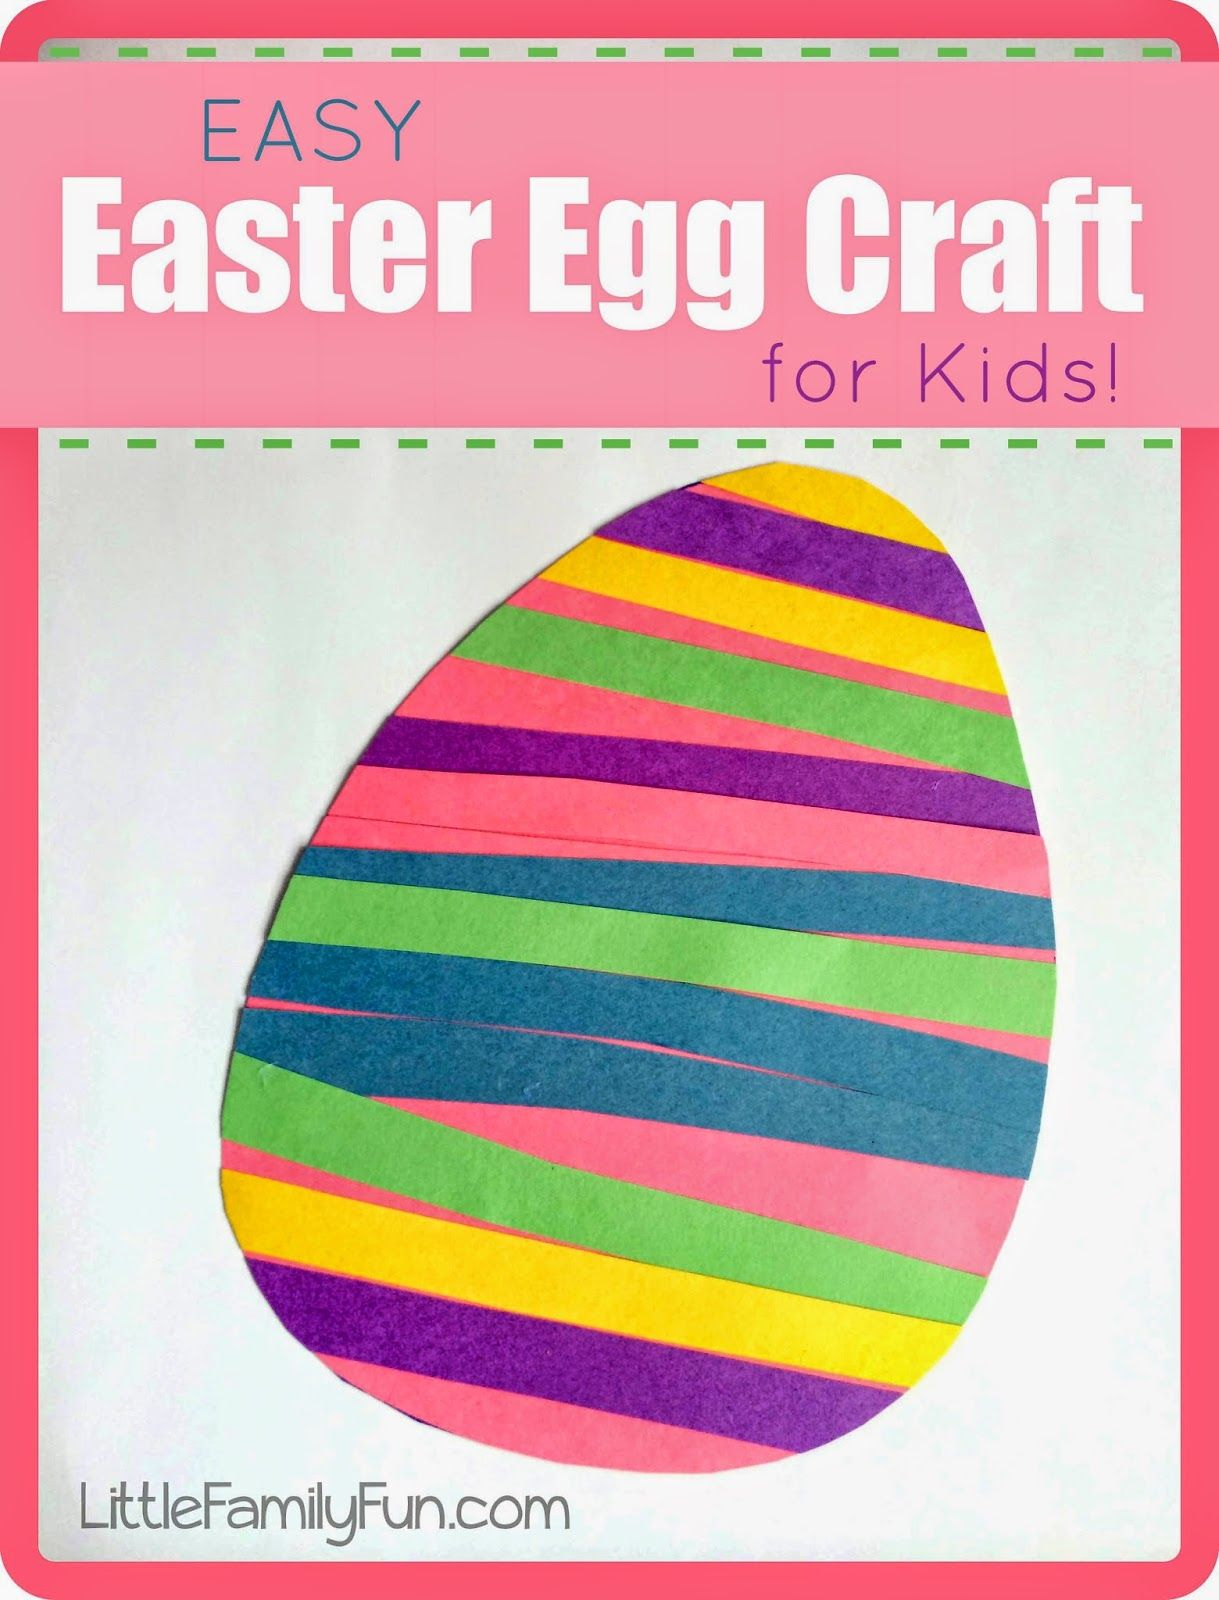 Fun And Easy Easter Egg Craft For Kids Just Grab Some Paper And Glue